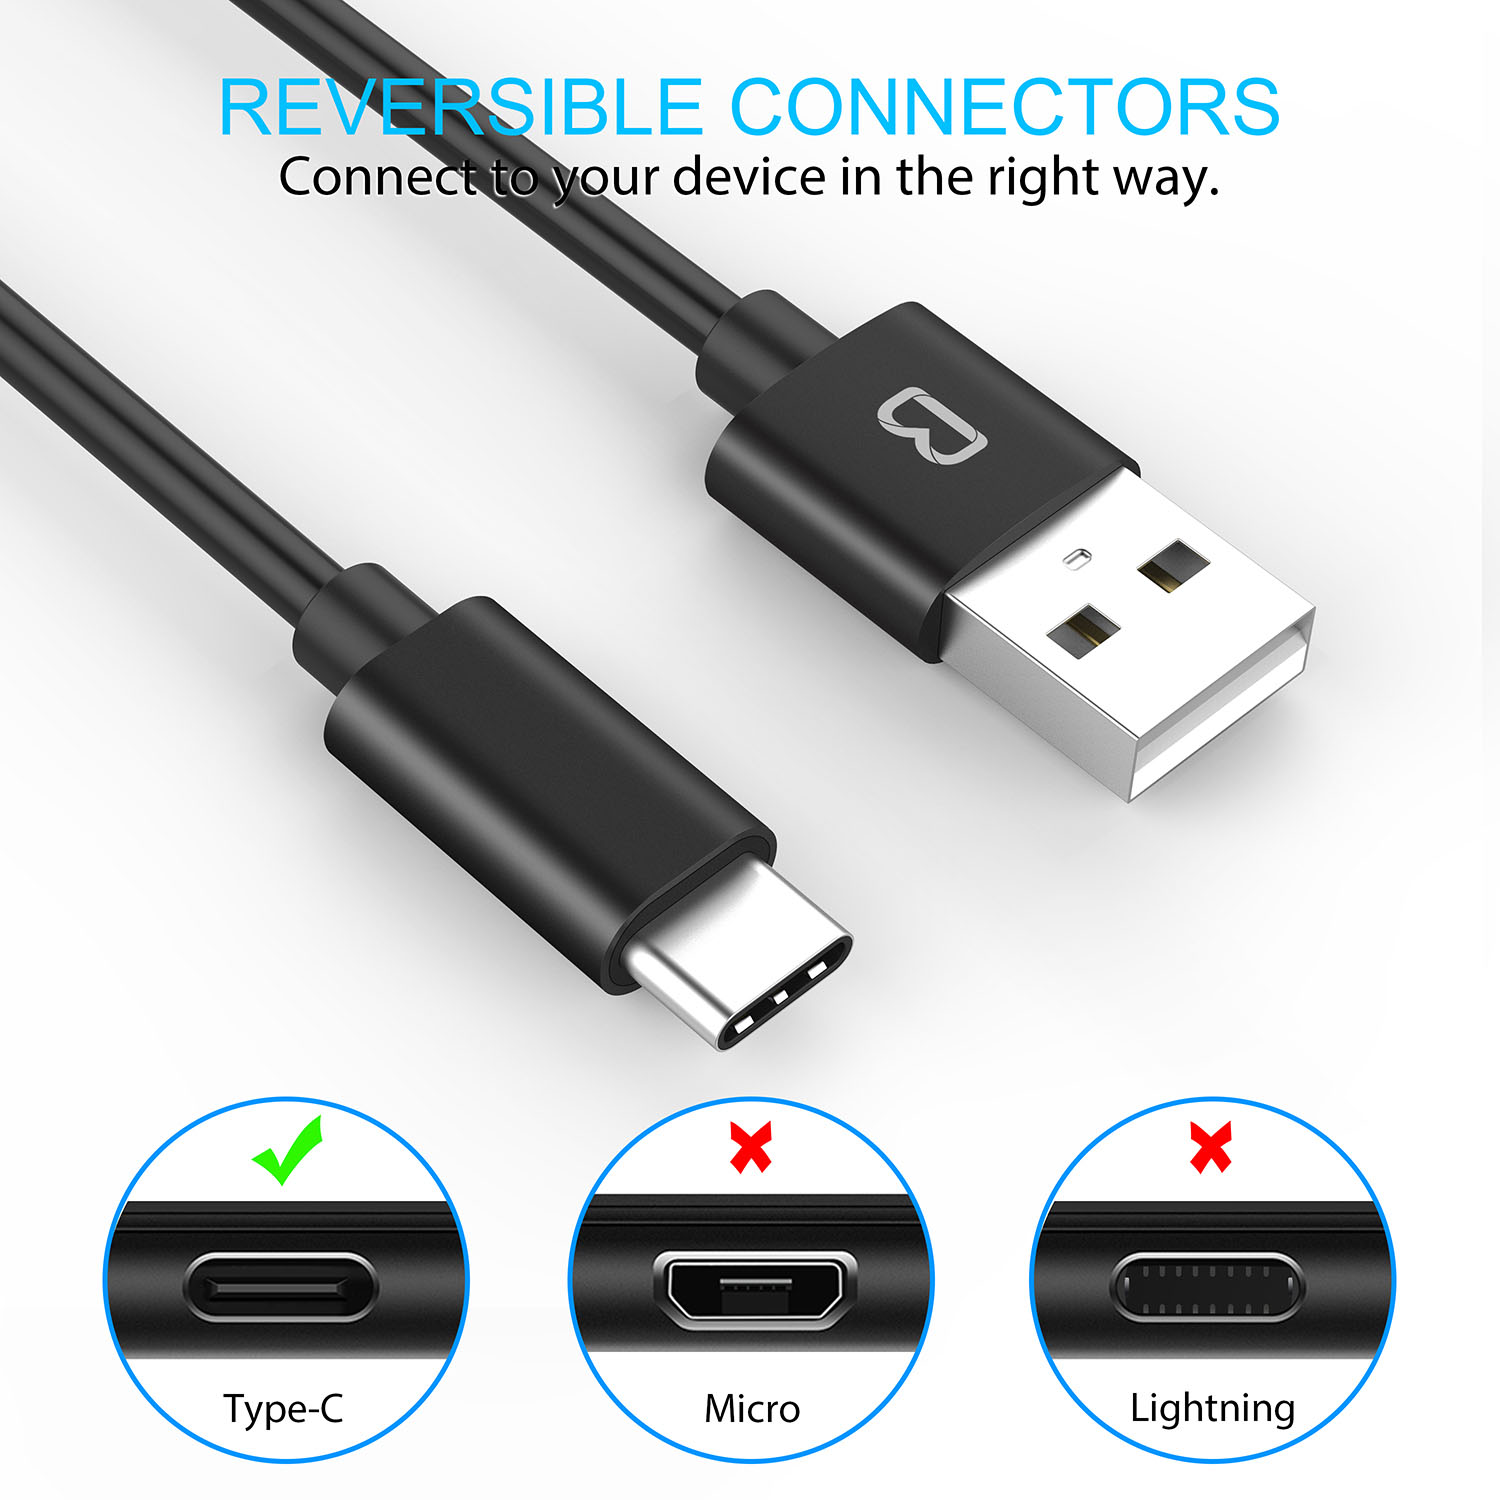 Usb C Cablebeikell 3 Pack 33ft 1m Type Cable To 20 Nexus Smart Switch Wiring High Speed Charging Data Transfer For Samsung Galaxy S8 Nintendo Switchnexus 5x 6phtc 10 U11oneplus 2 3thuawei